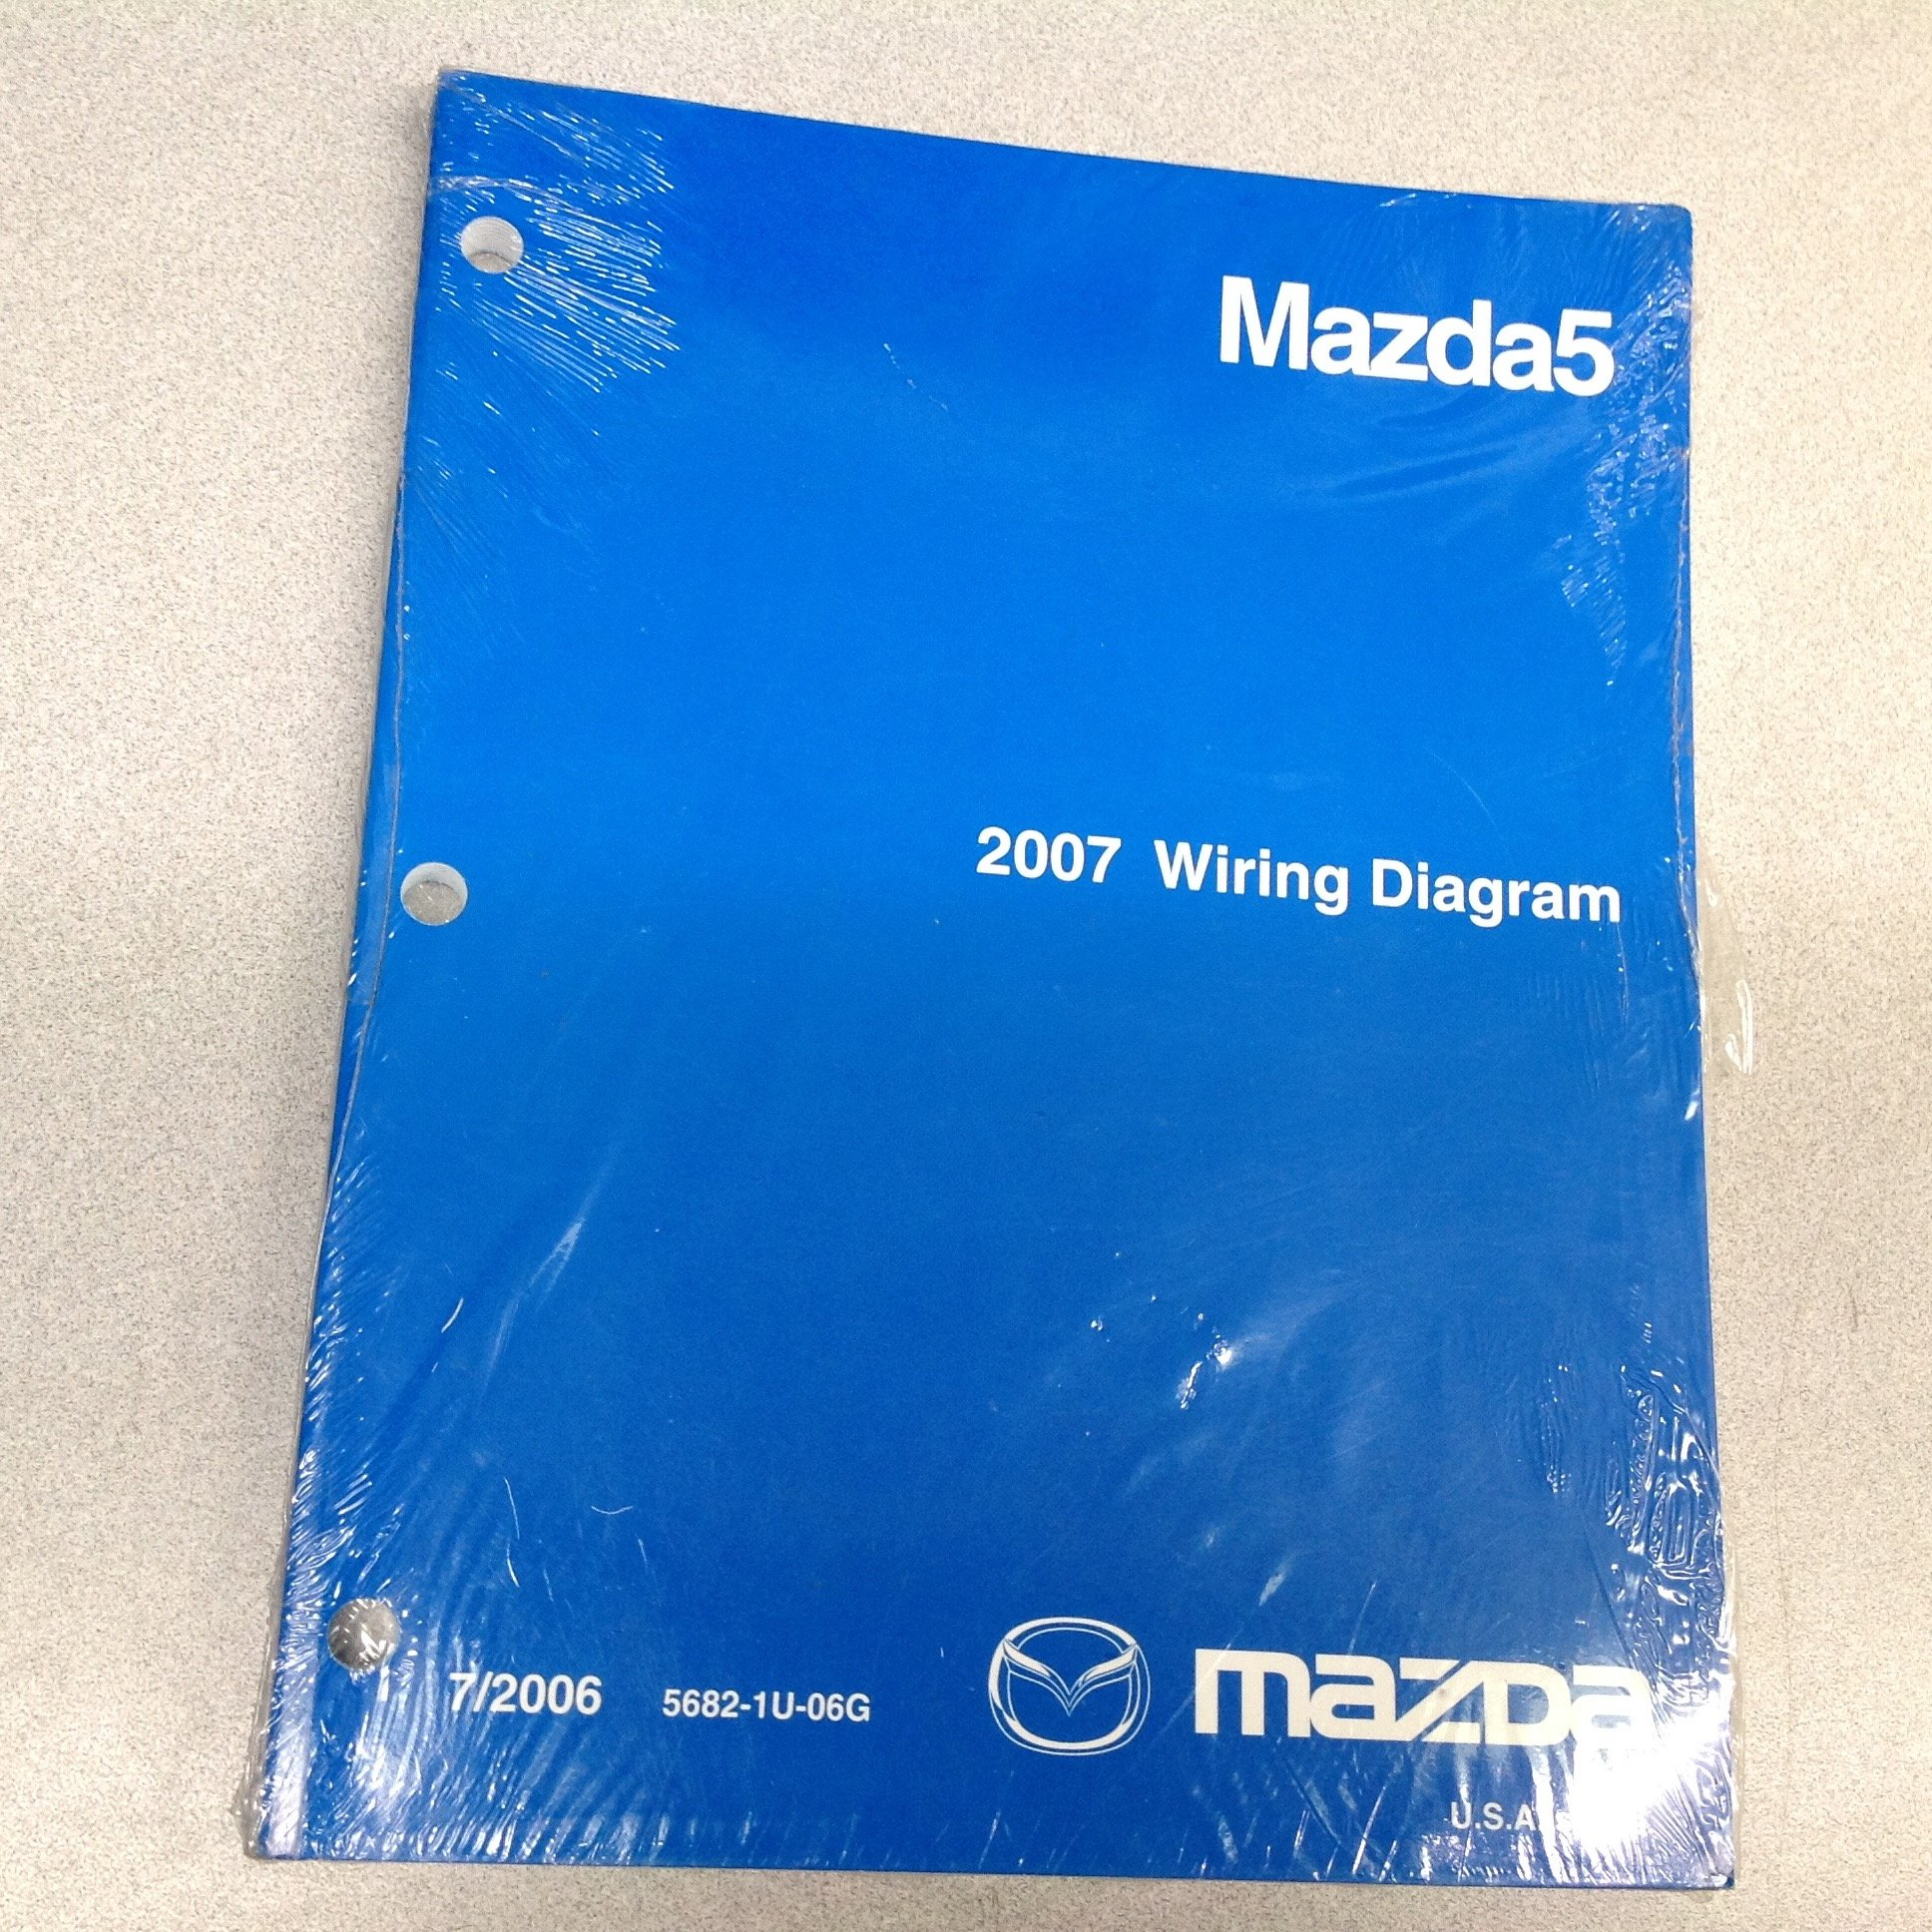 2007 Mazda5 Electrical Wiring Diagram Troubleshooting Shop Manual ETM EWD  EVTM: MAZDA: Amazon.com: Books